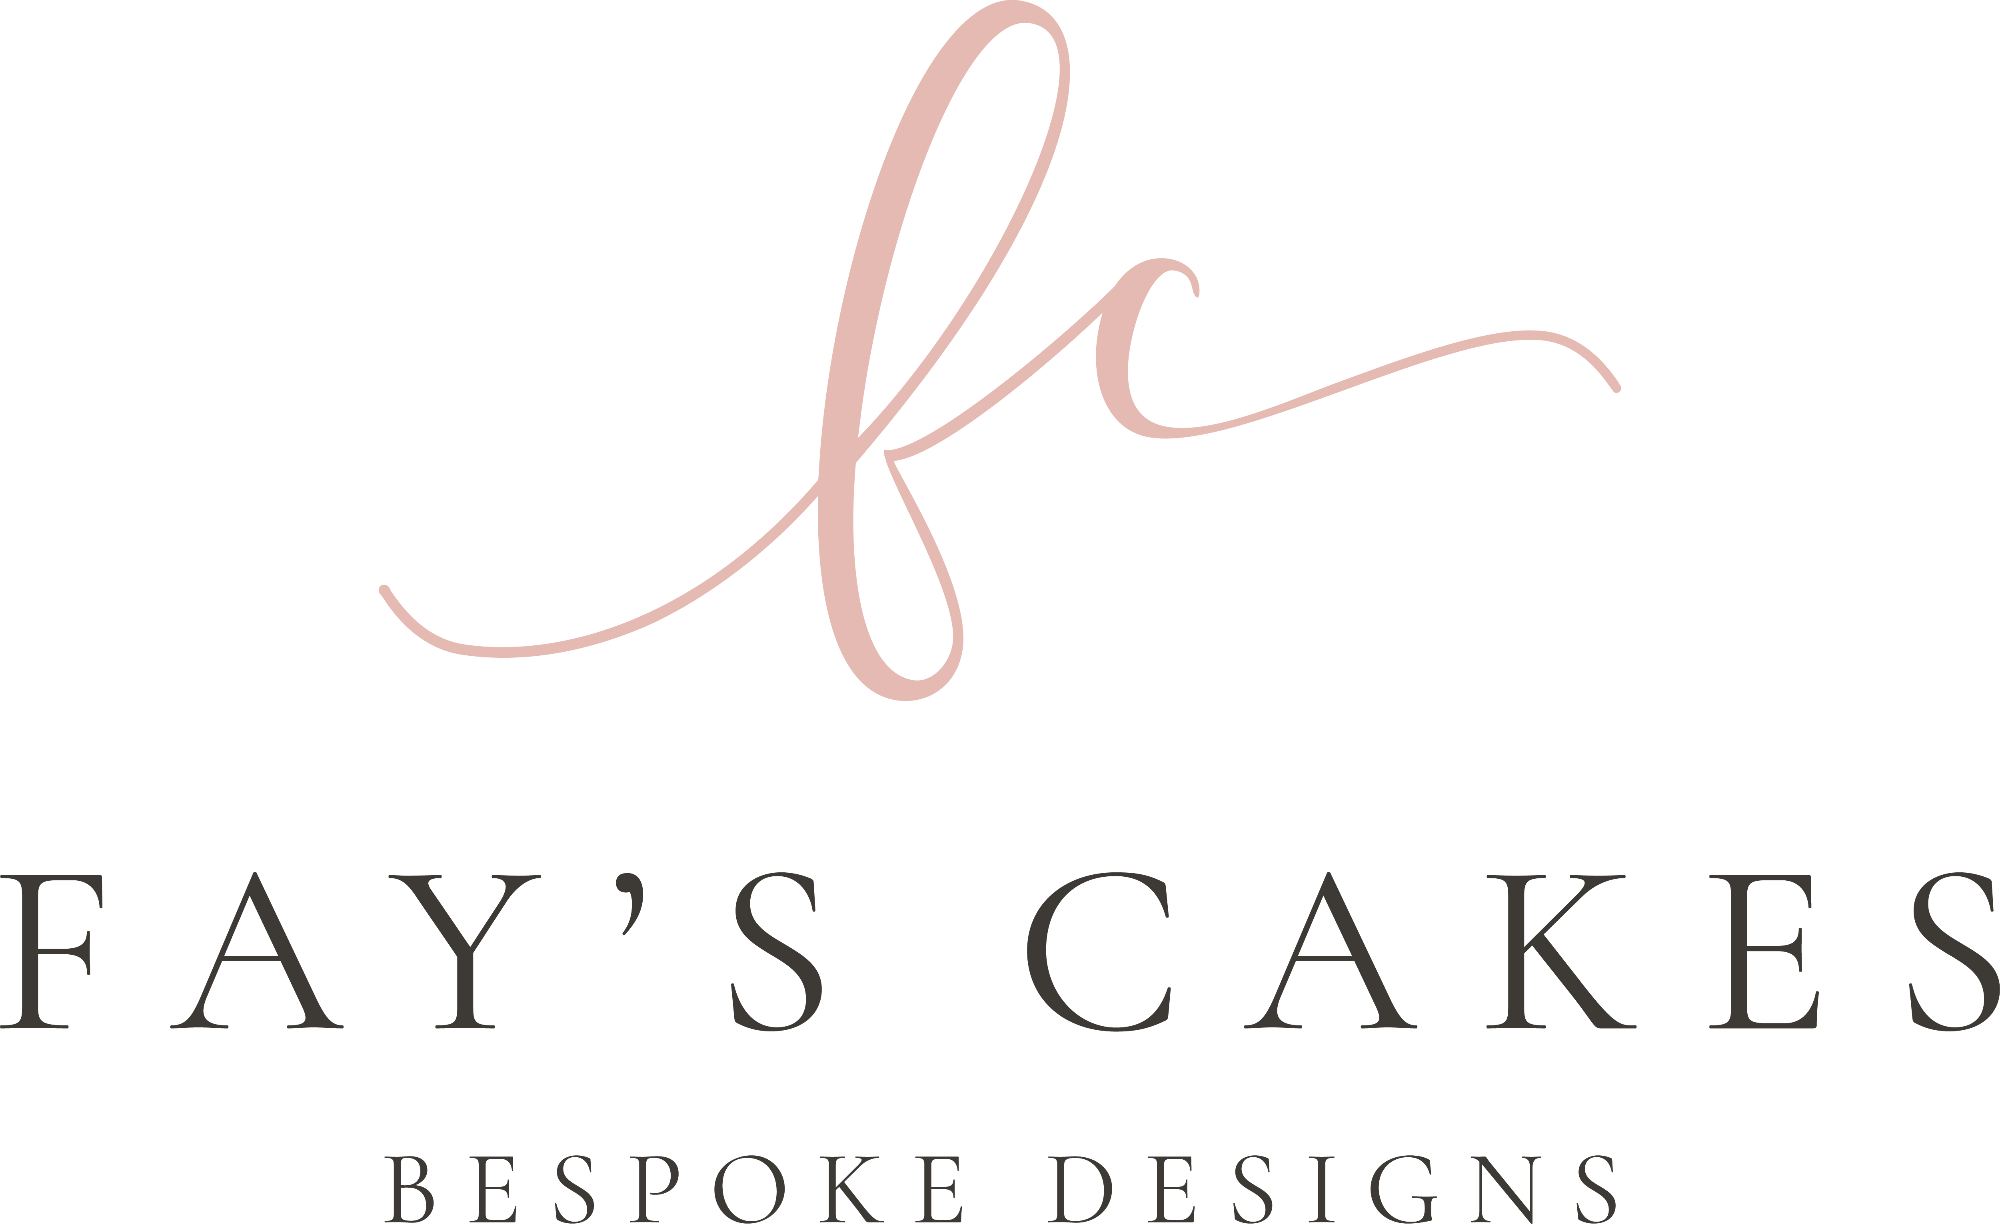 Fay's cakes bespoke design